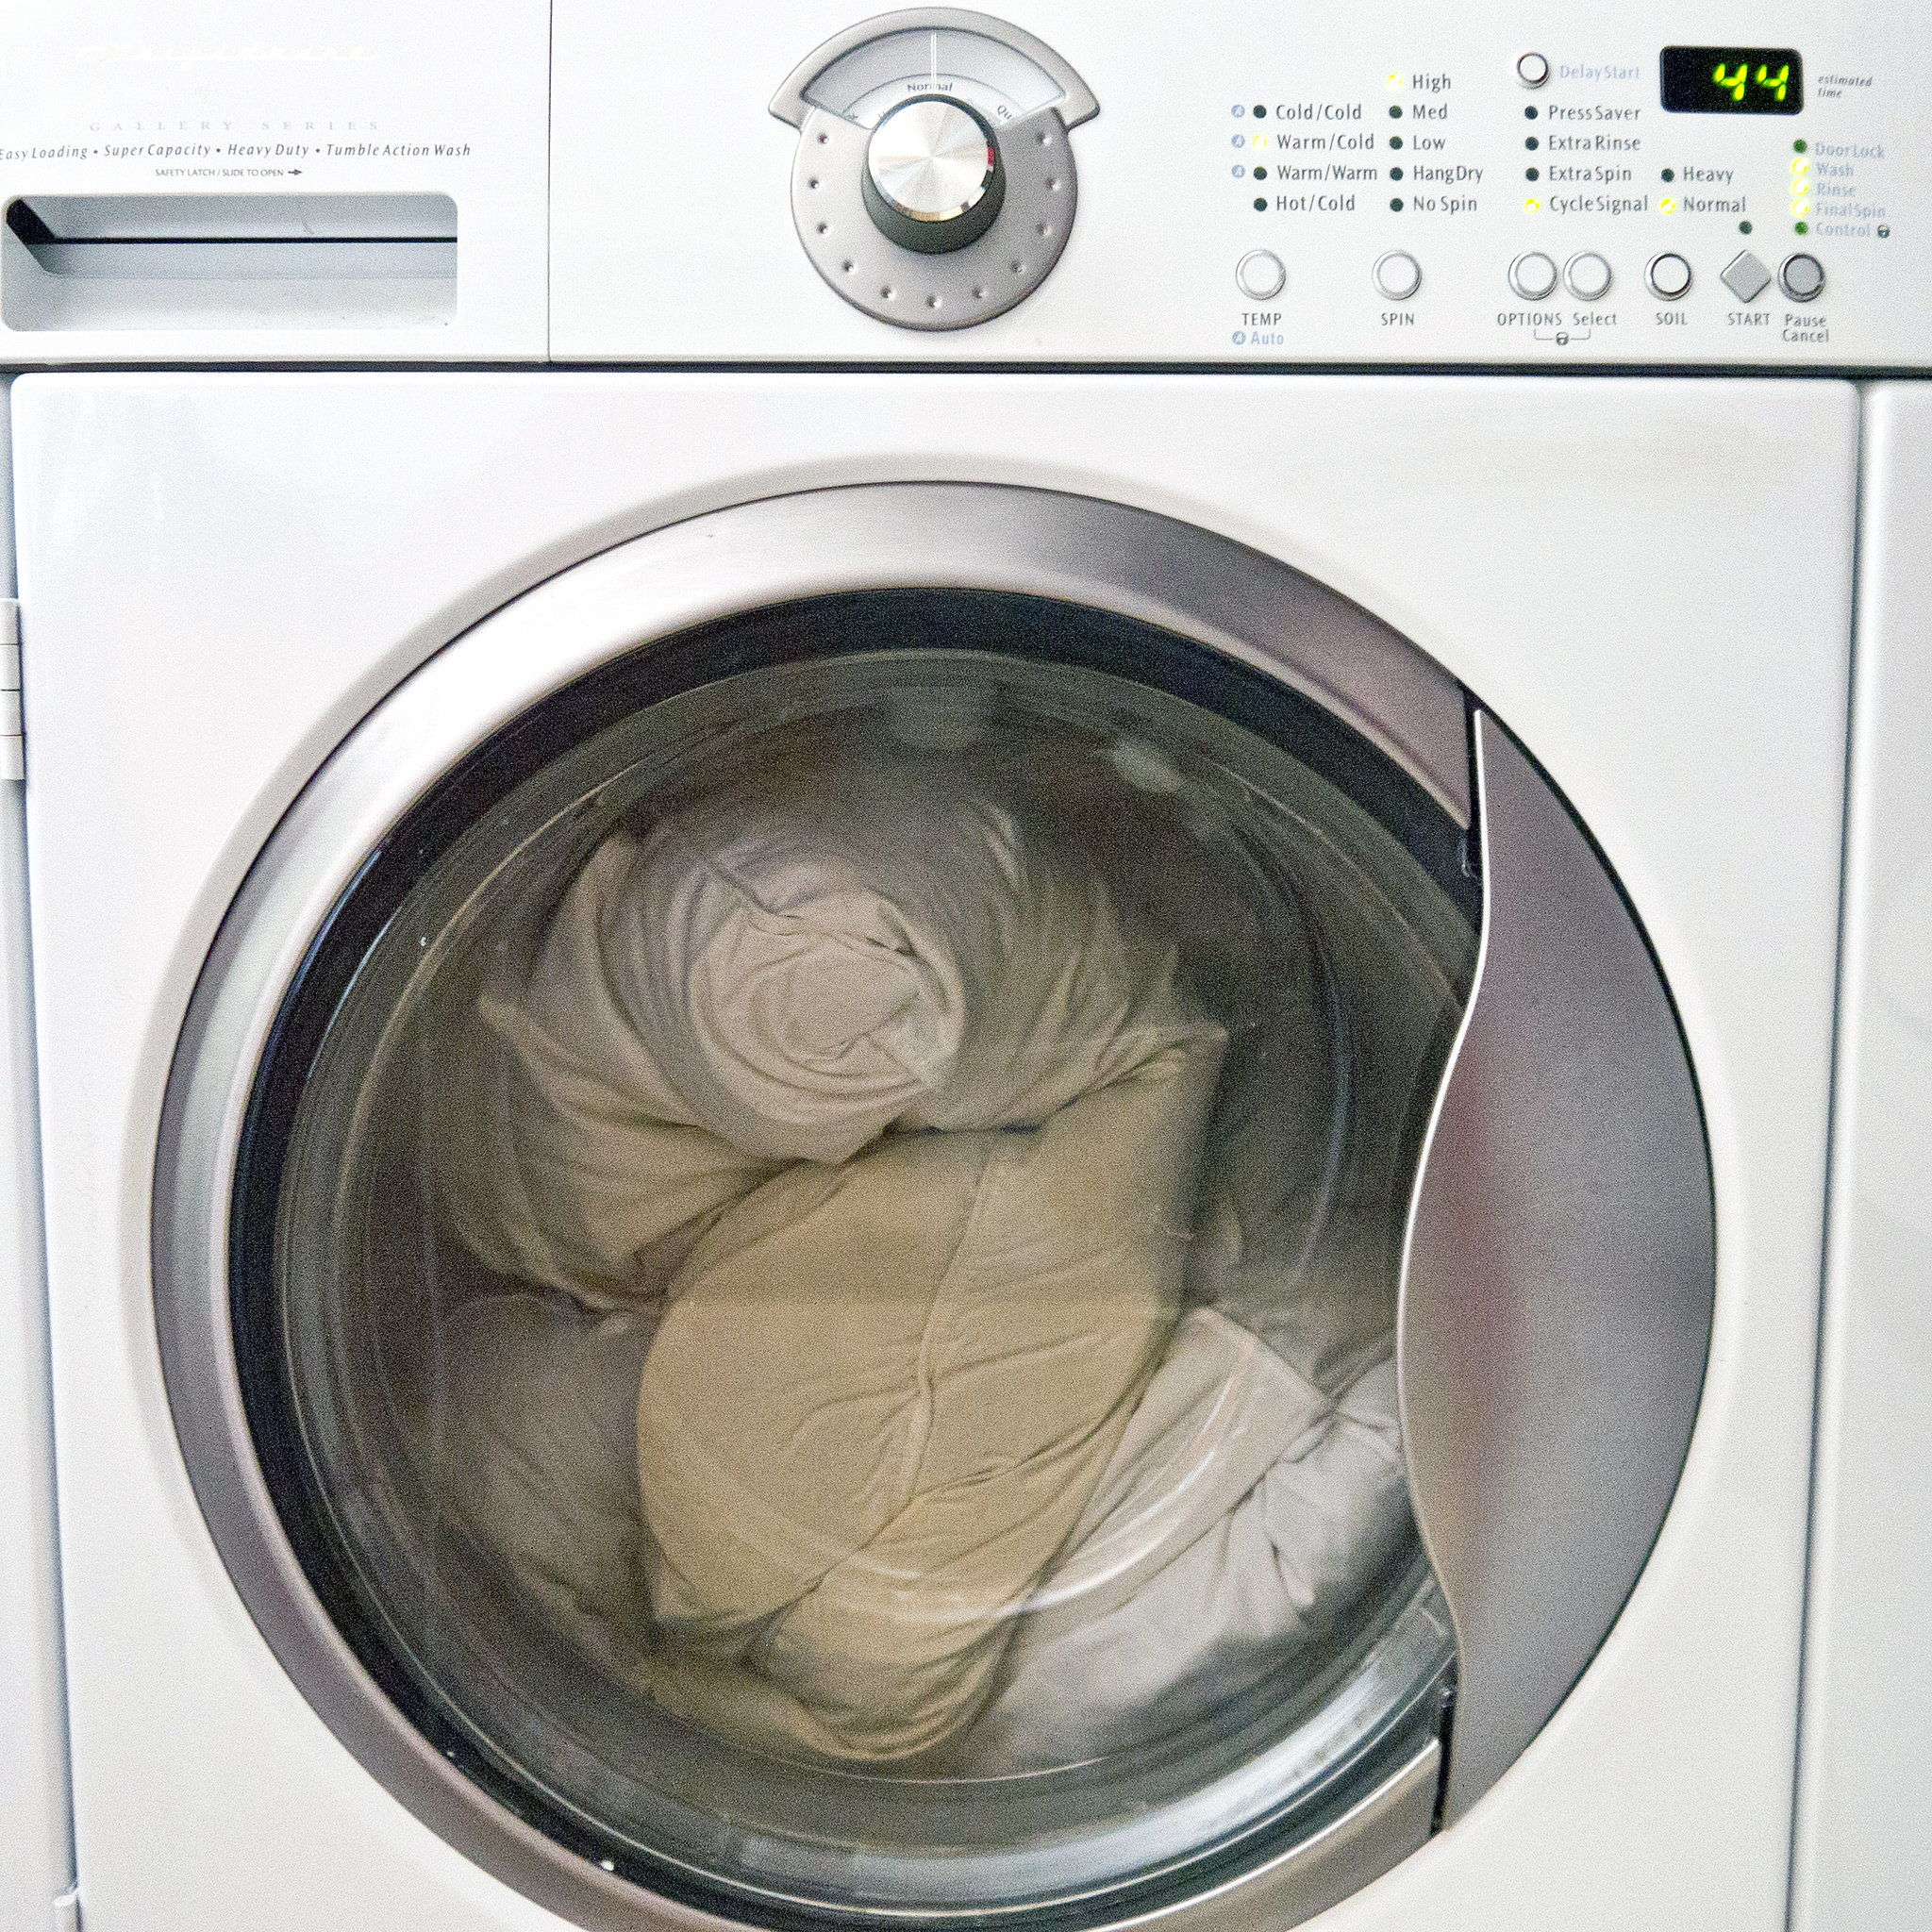 Washing machine pillow